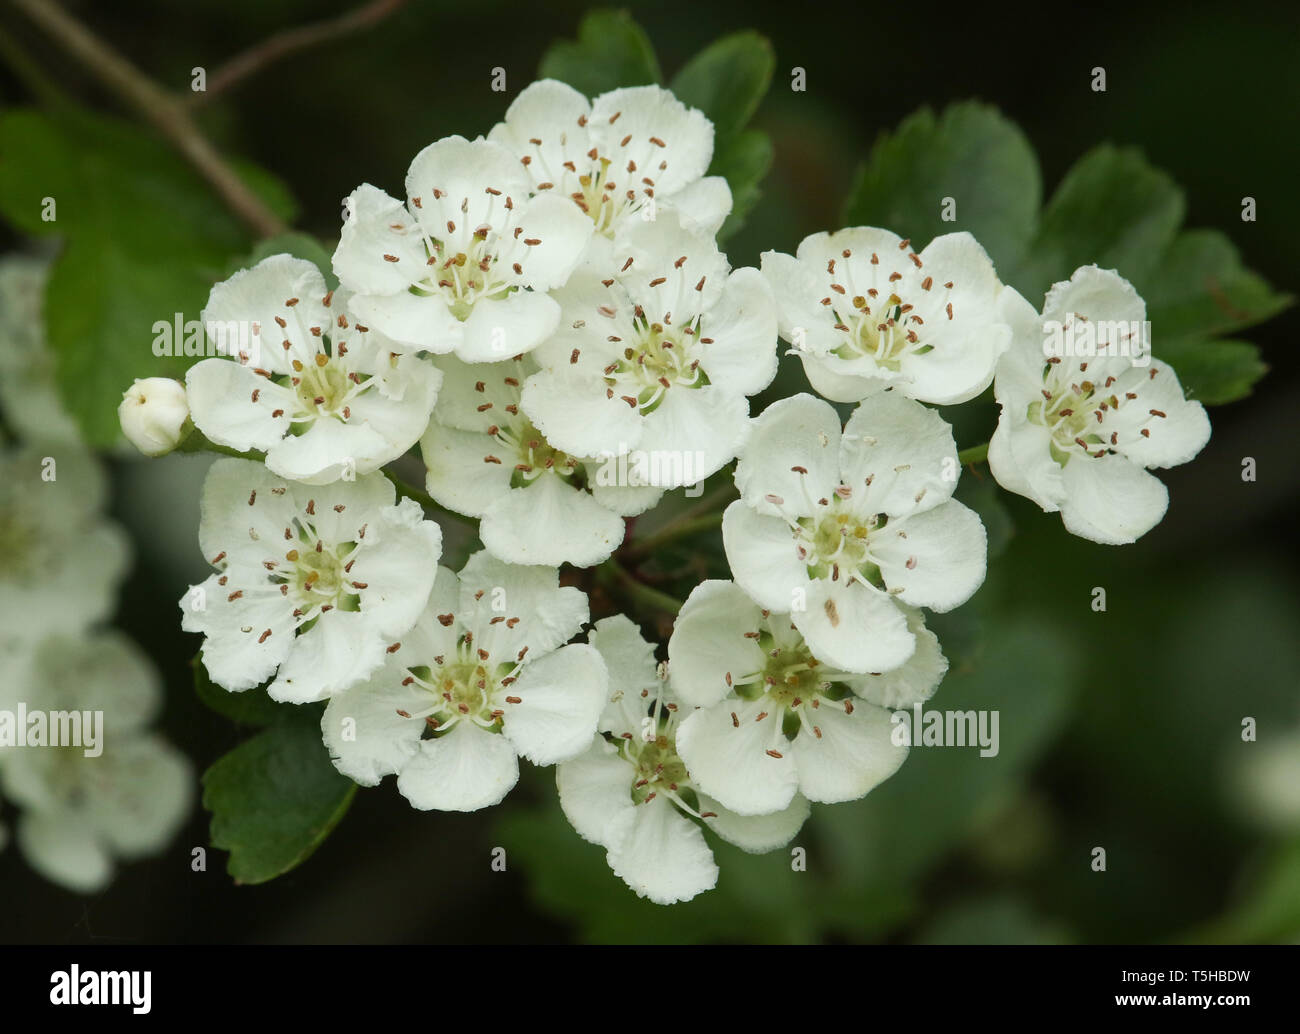 A branch of beautiful Hawthorn Tree, blossom, Crataegus monogyna, growing in the countryside in the UK. - Stock Image